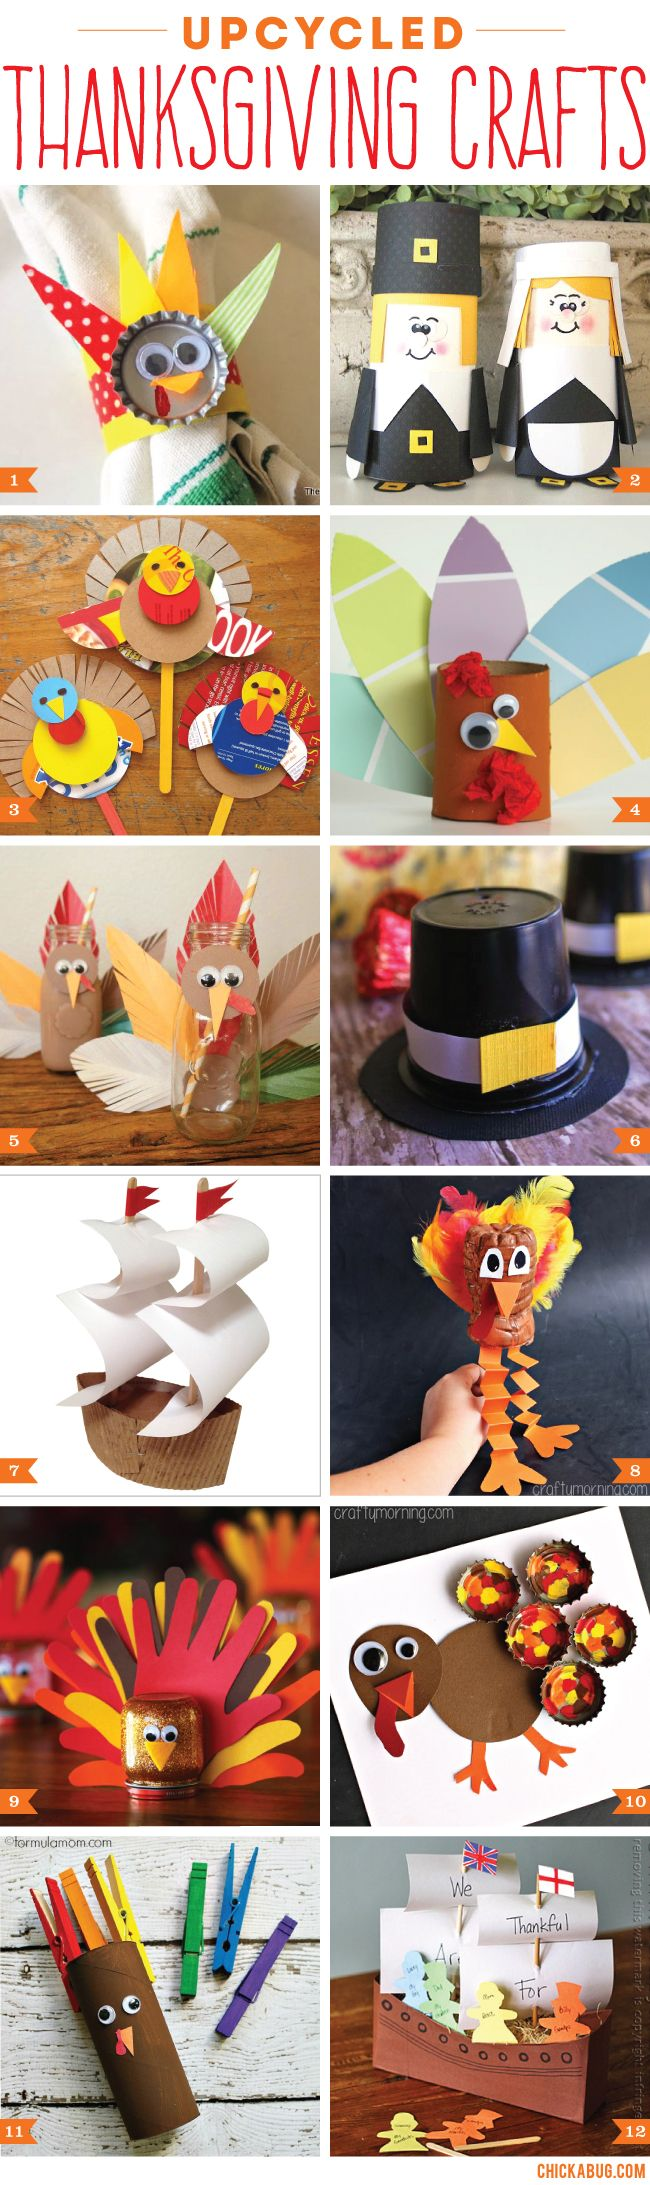 These upcycled Thanksgiving crafts for kids are great for playtime. Lots of them will do double duty as Thanksgiving table decor, too! #upcycle #thanksgiving #craftsforkids